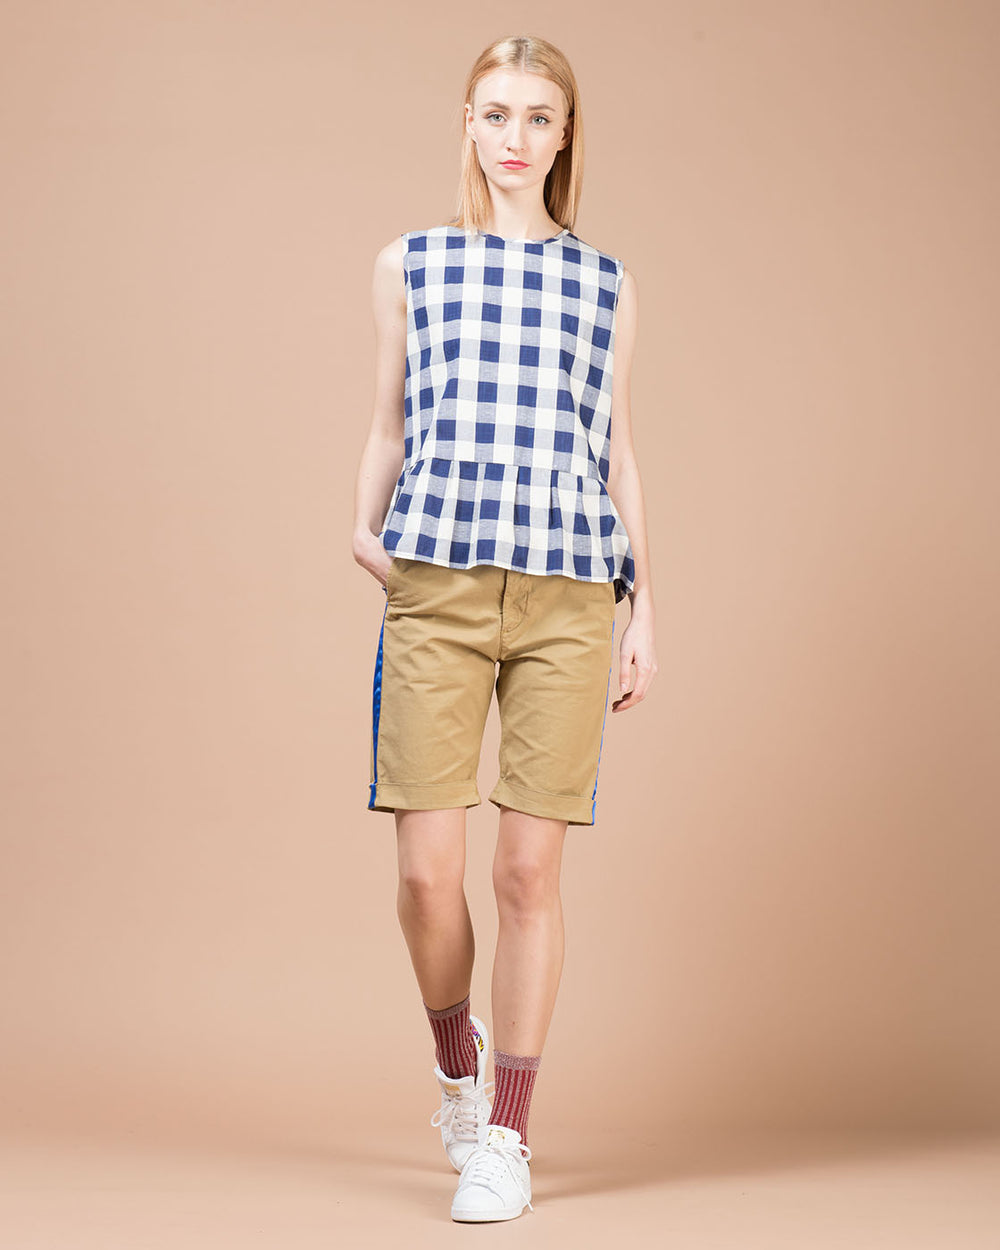 Khaki Contrast Stripes Shorts